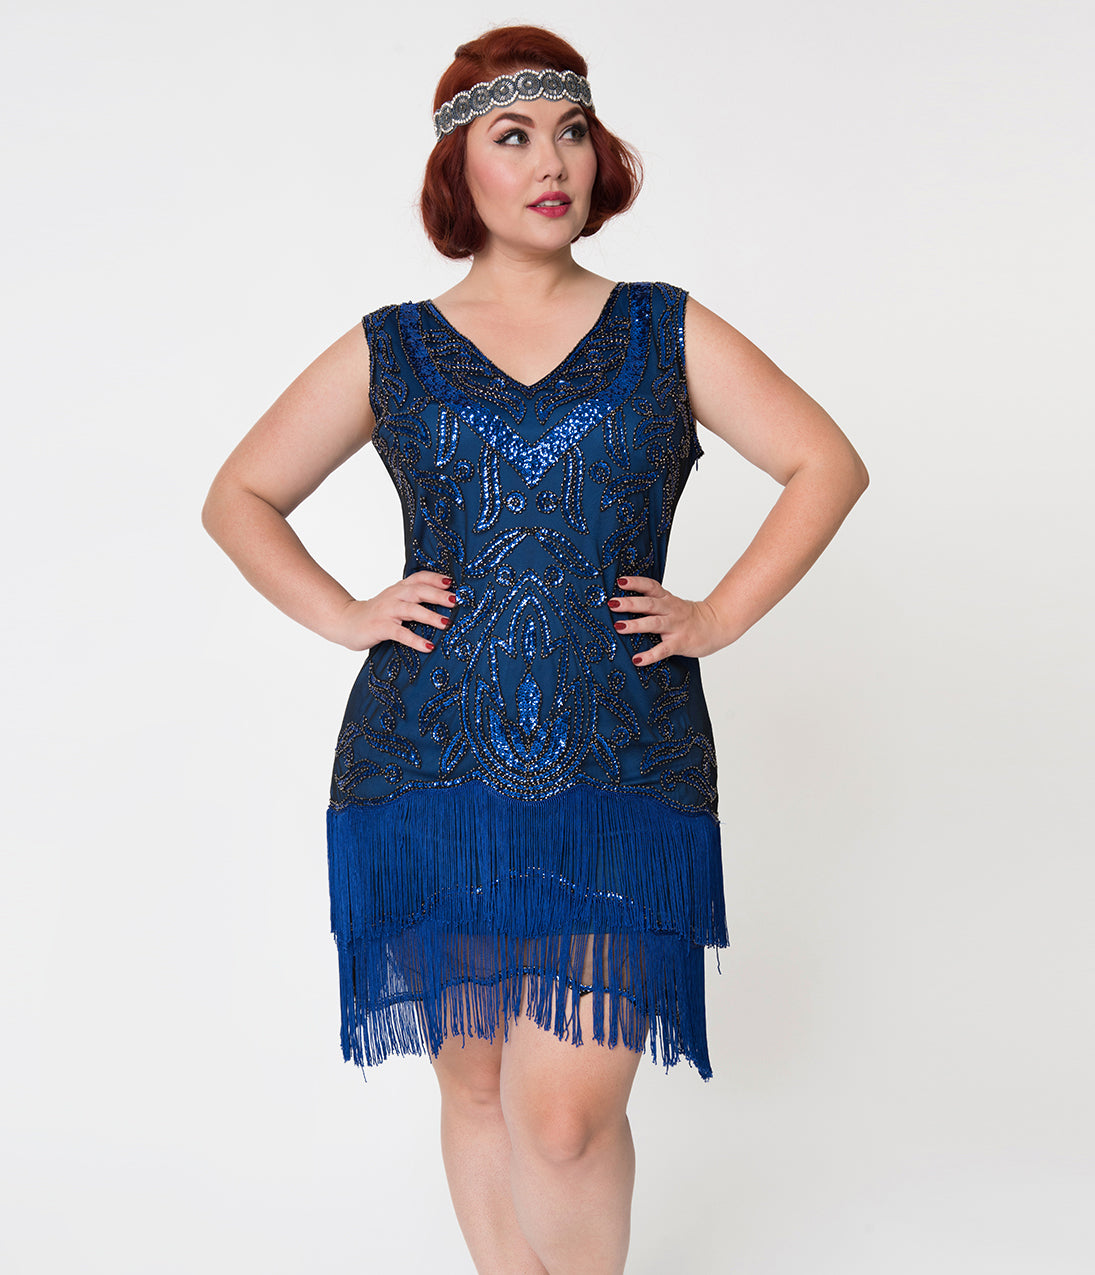 Roaring 20s Costumes- Flapper Costumes, Gangster Costumes Unique Vintage Plus Size 1920S Style Royal Blue Beaded Zoe Cocktail Dress $36.00 AT vintagedancer.com